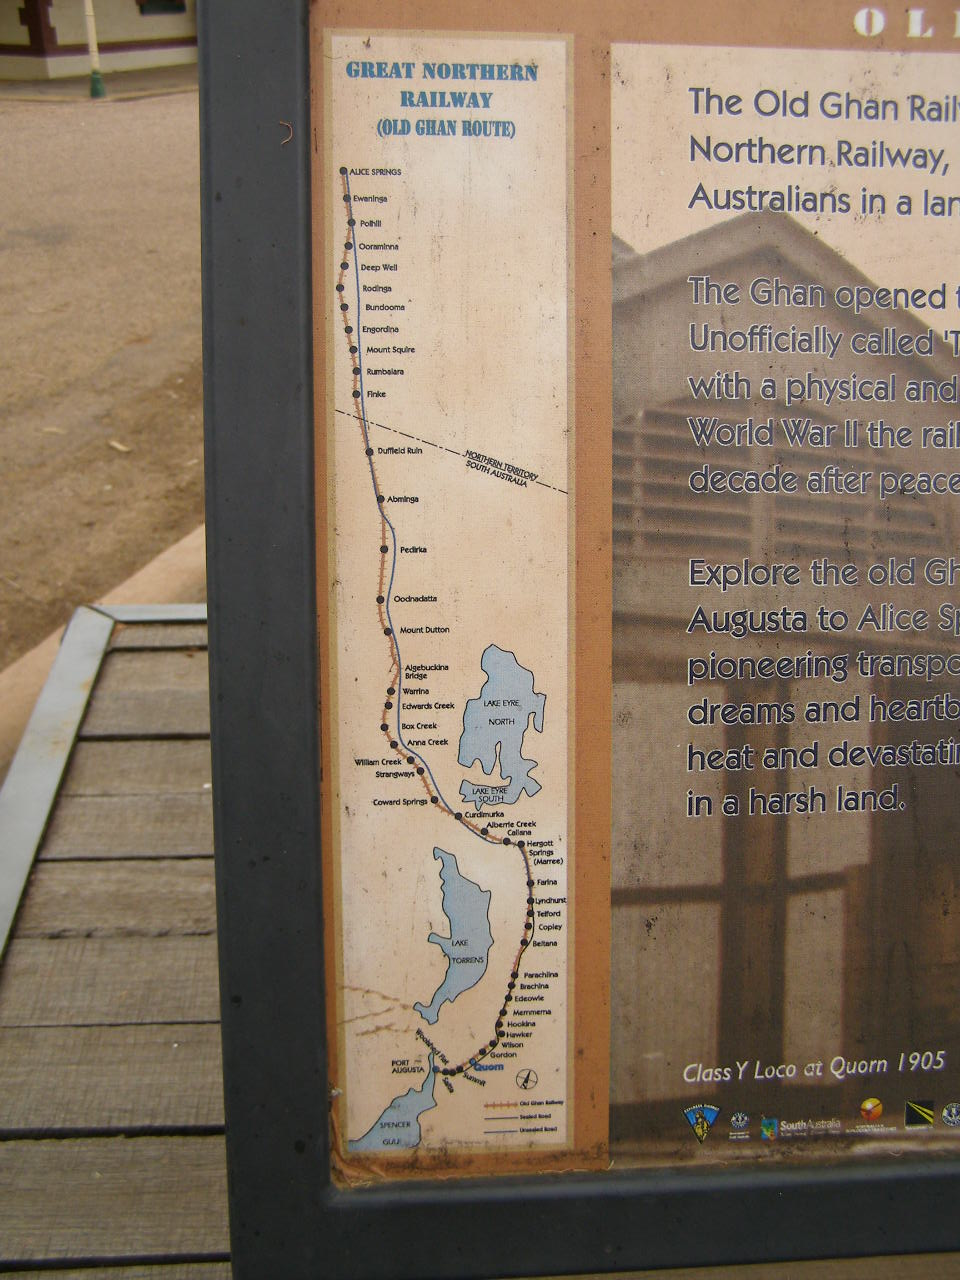 quorn-the-old-ghan-route.jpg